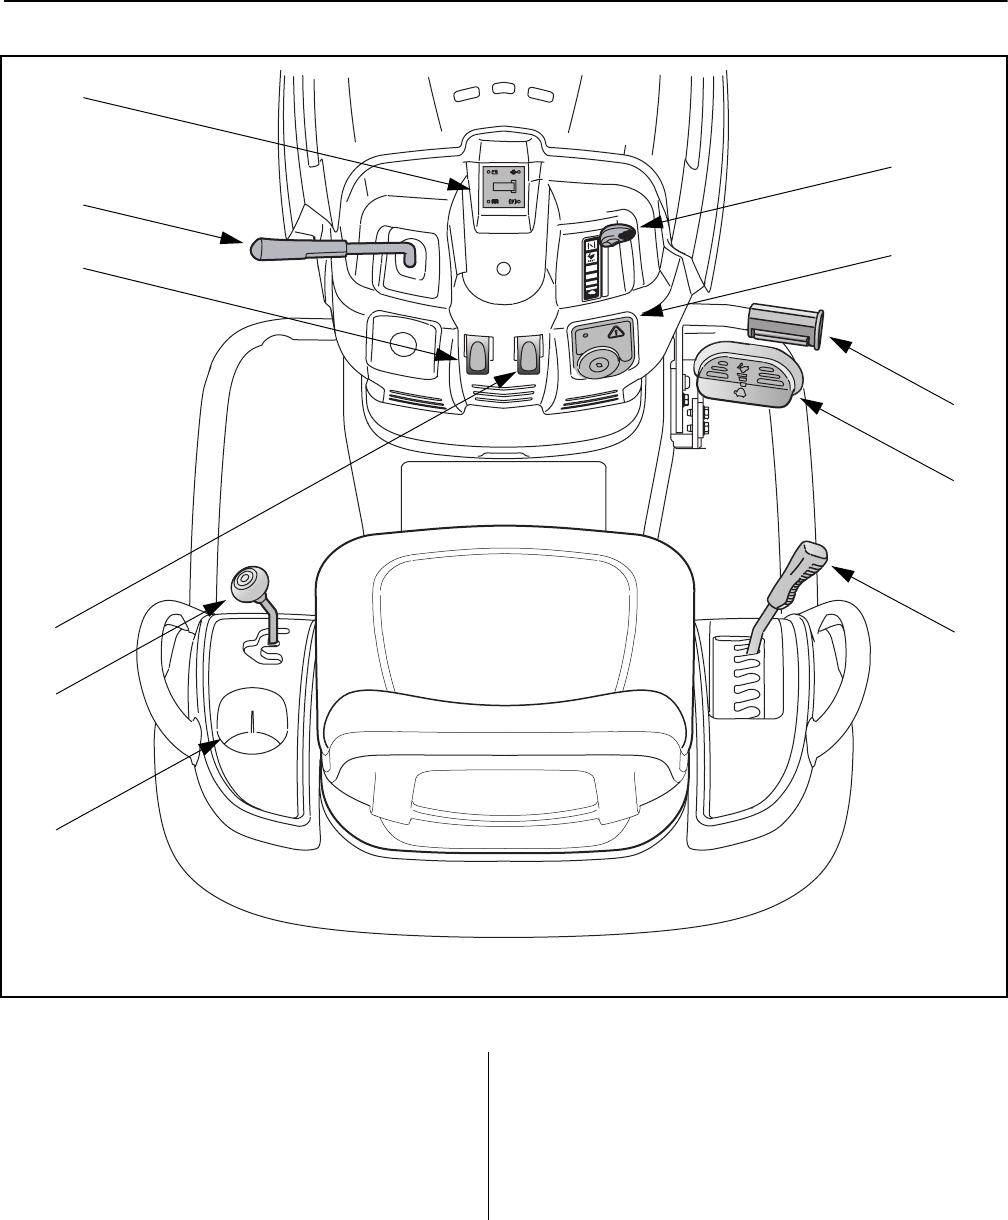 Page 13 of Toro Lawn Mower LX420, LX460 User Guide